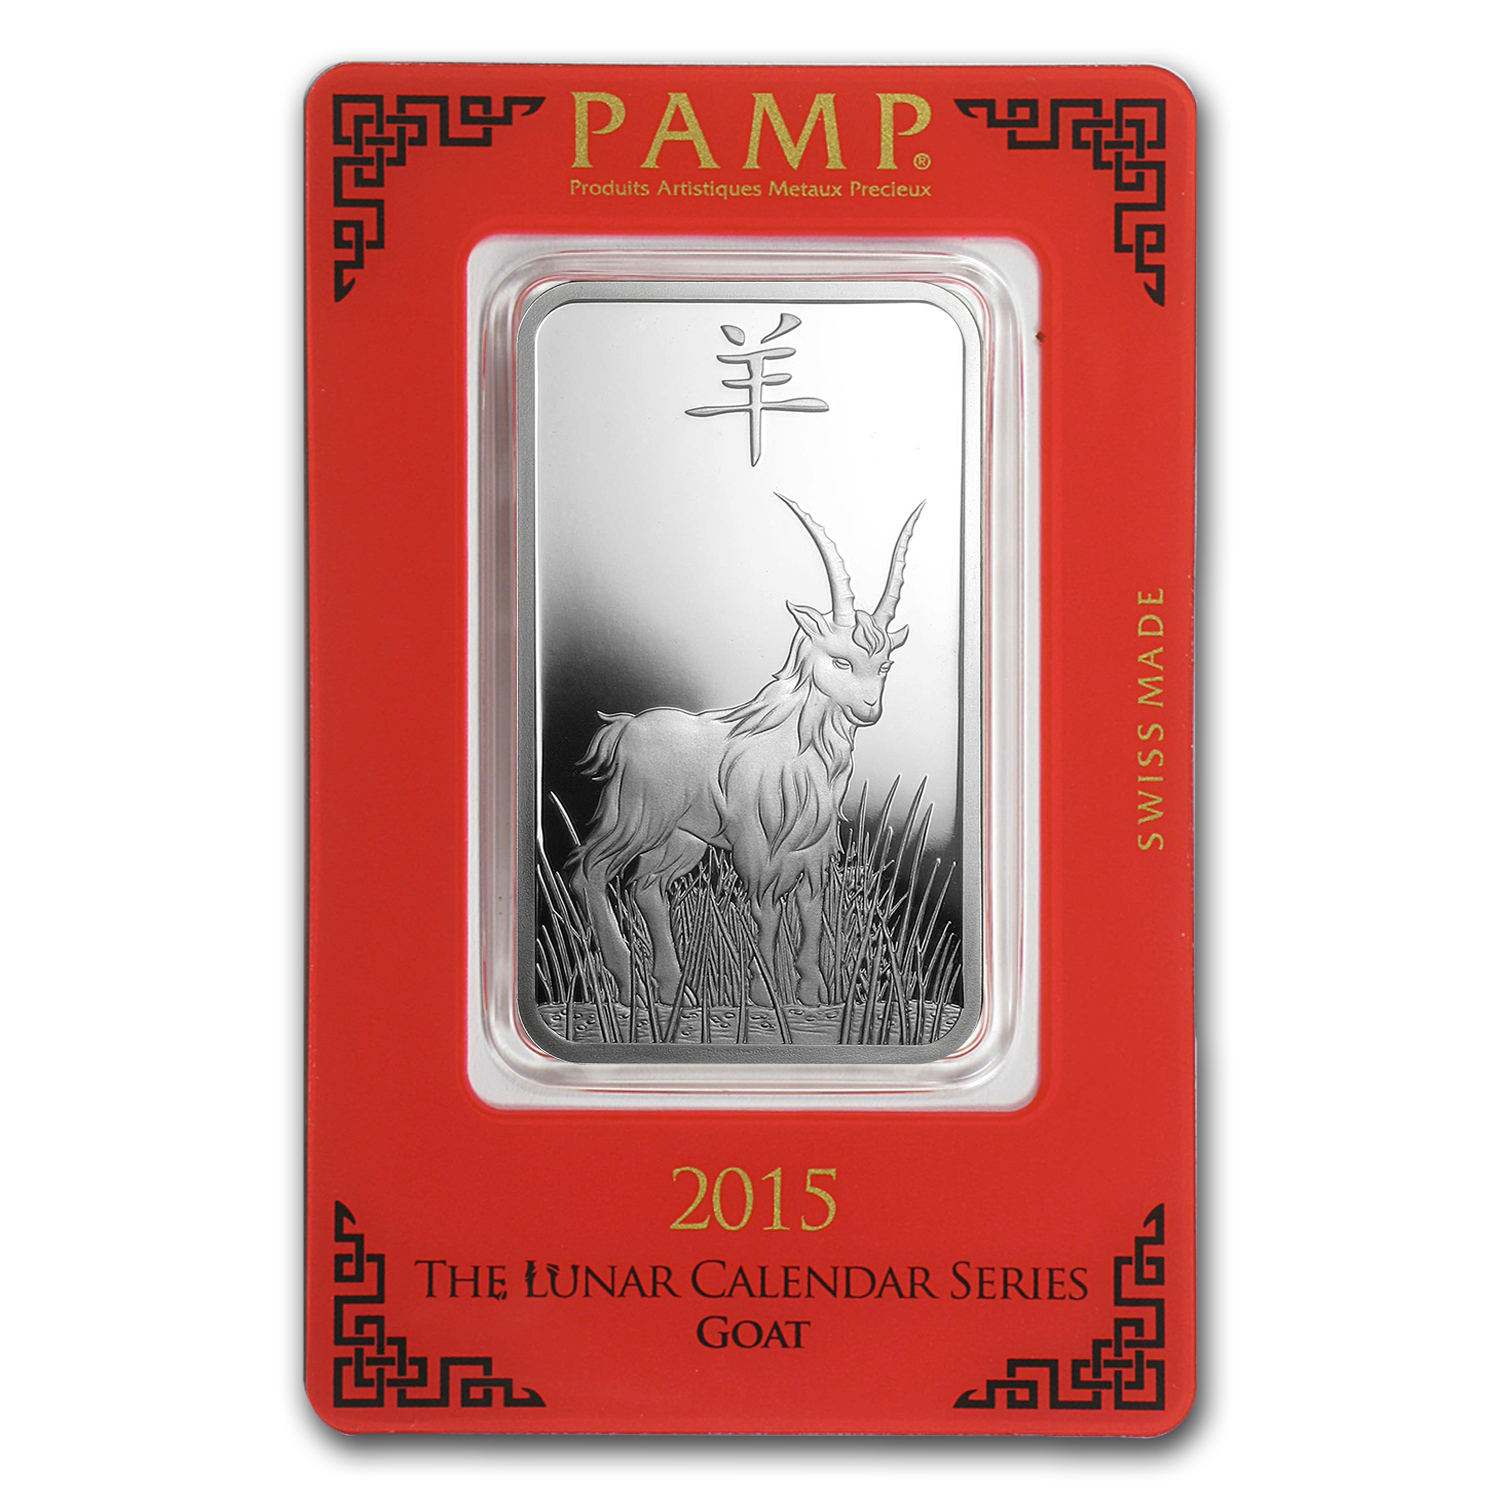 1 oz Silver Bar - Pamp Suisse (Year of the Goat)